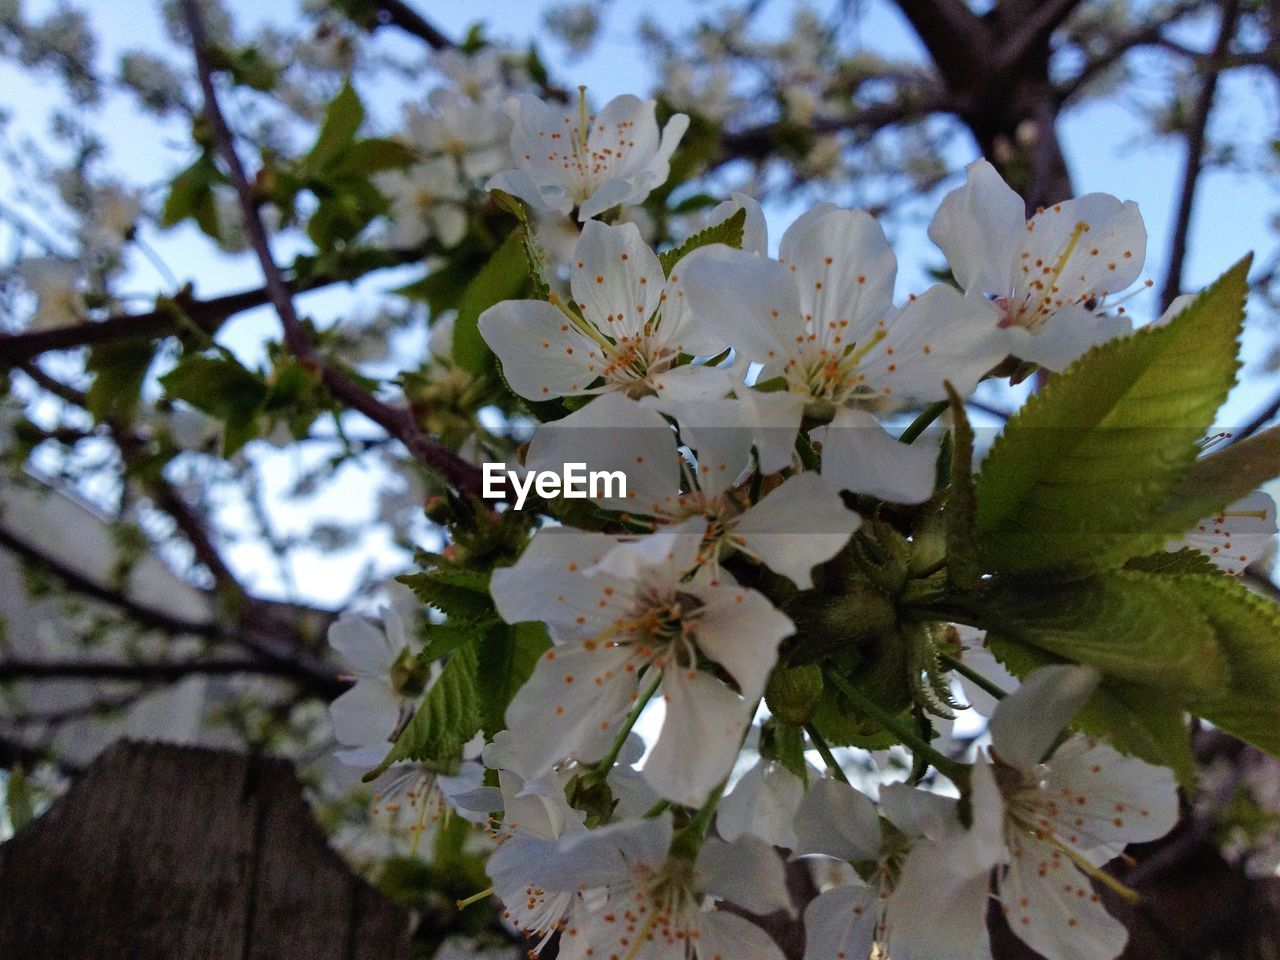 flower, blossom, springtime, fragility, apple blossom, apple tree, tree, branch, beauty in nature, white color, growth, cherry blossom, orchard, freshness, botany, almond tree, petal, nature, stamen, cherry tree, twig, pollen, flower head, no people, close-up, day, low angle view, selective focus, plum blossom, outdoors, blooming, sky